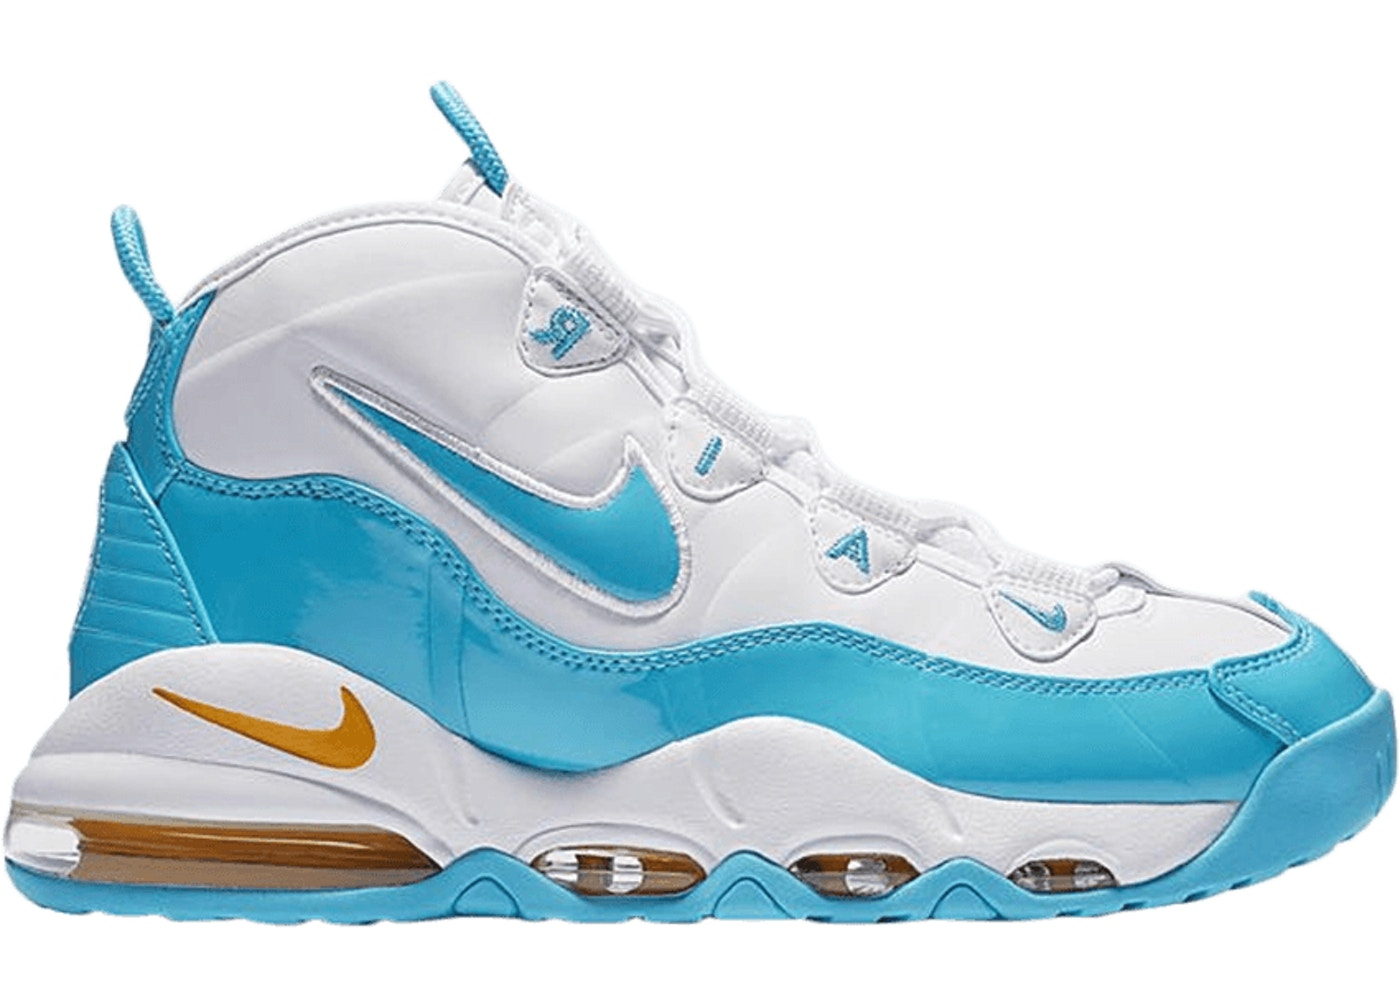 Nike Air Max Uptempo 95 Blue Fury Ck0892 100